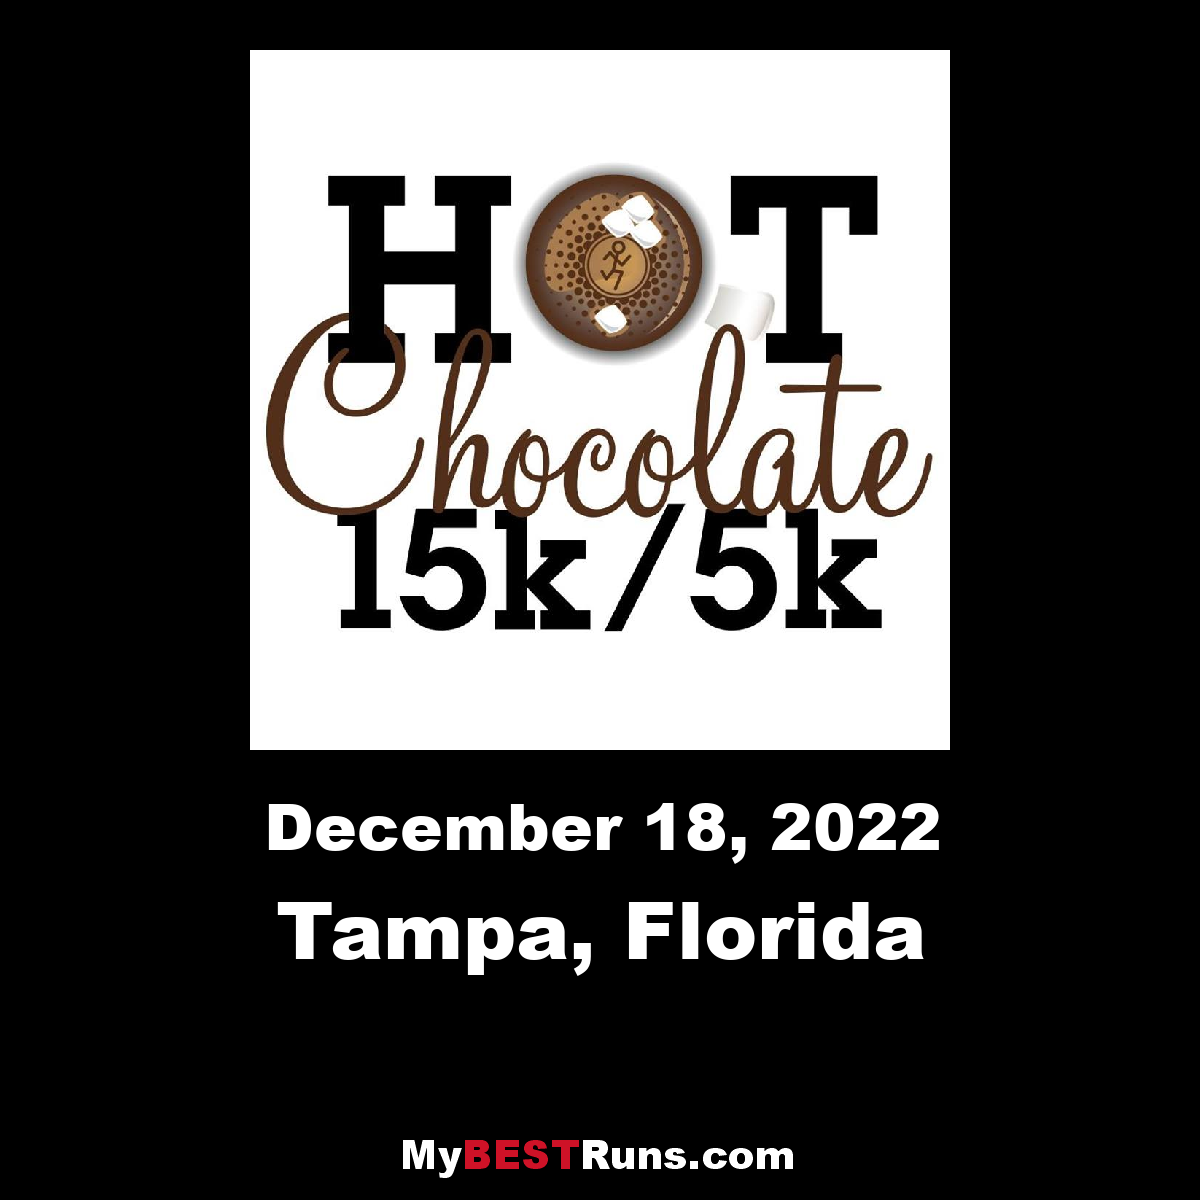 Hot Chocolate Tampa - Tampa, Florida - 12/17/2017 - My BEST Runs ...